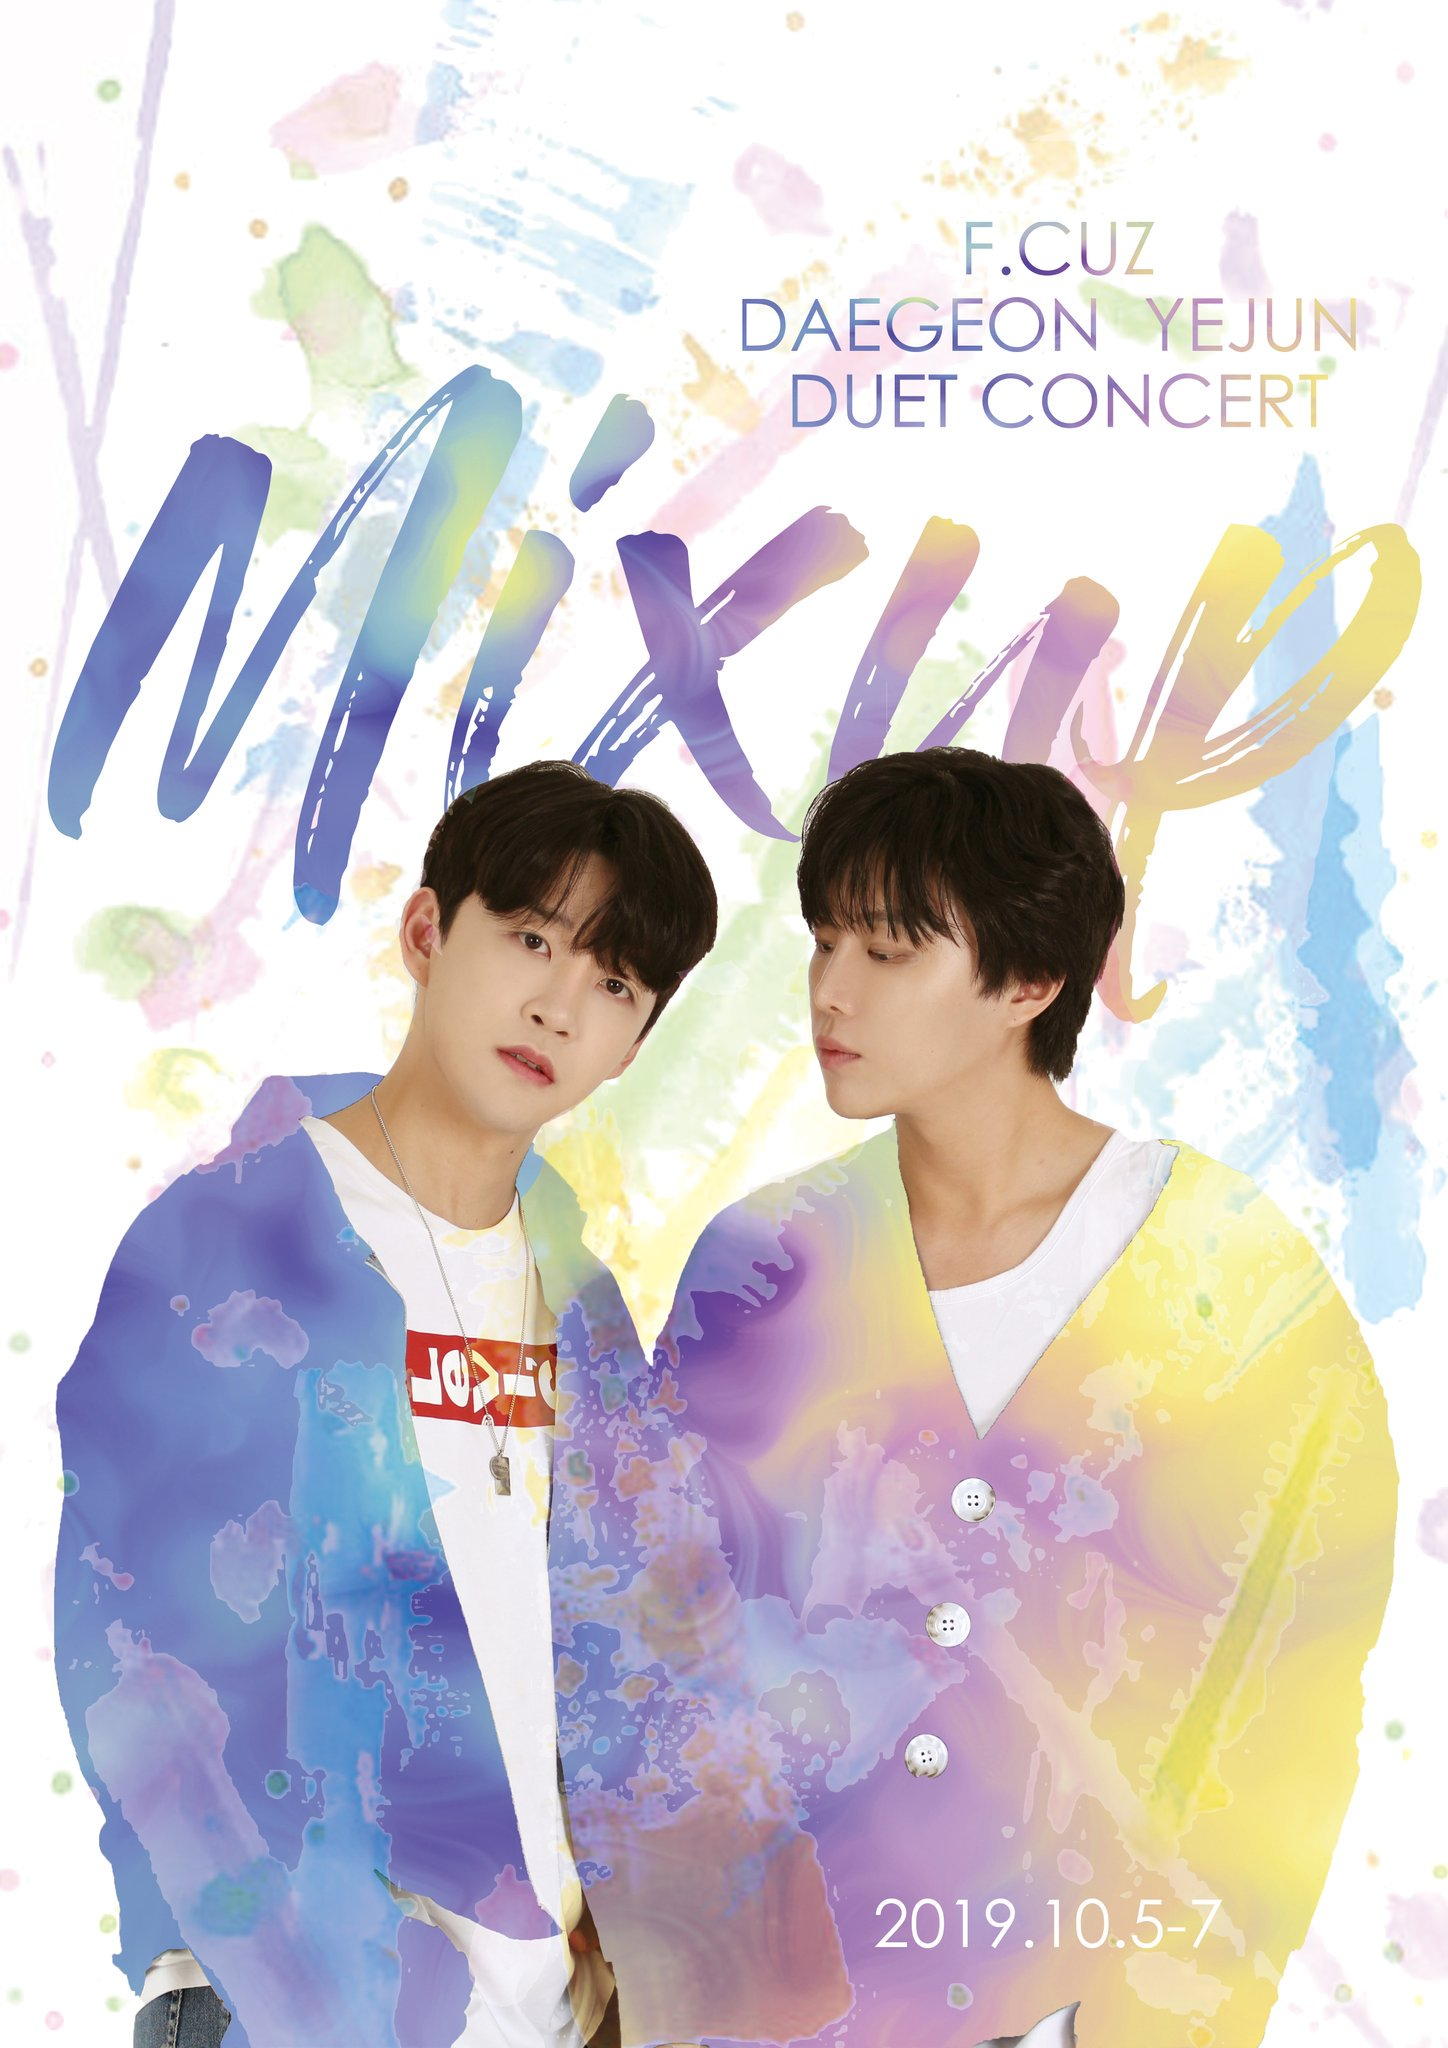 F.CUZ DAEGEON-YEJUN DUET CONCERT 'MIX UP'